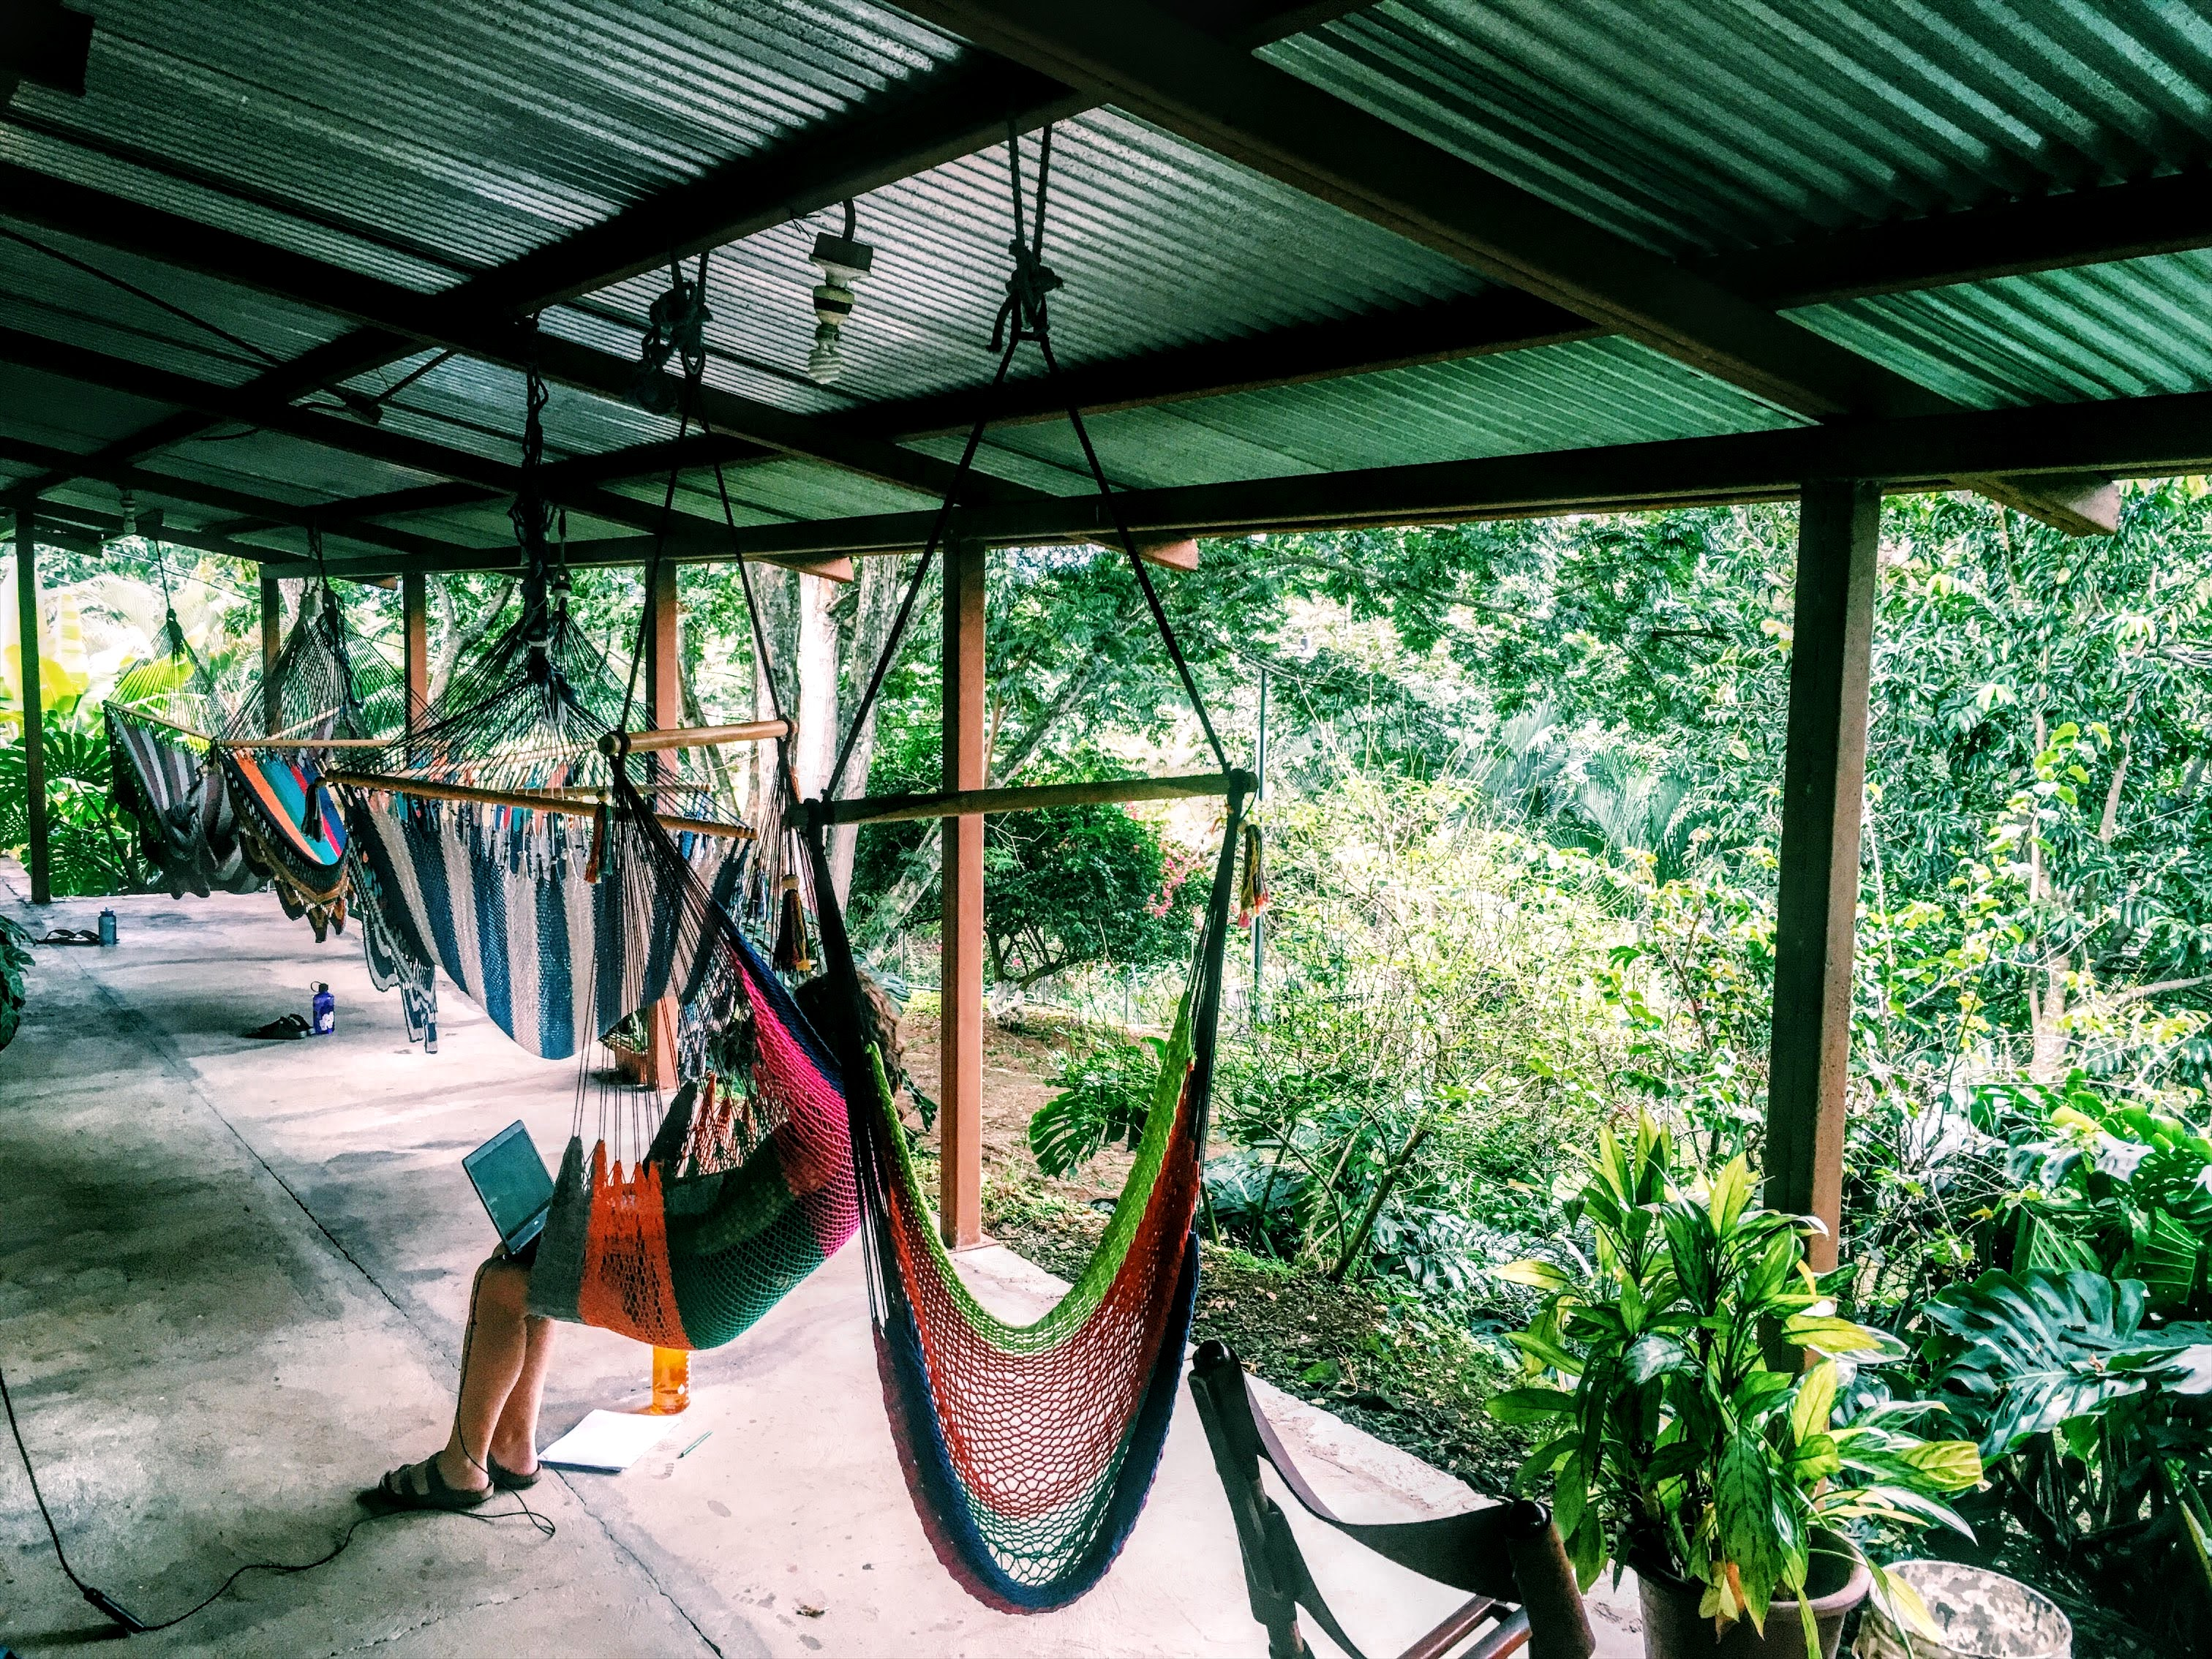 First Moments in Costa Rica - A Student Adventure